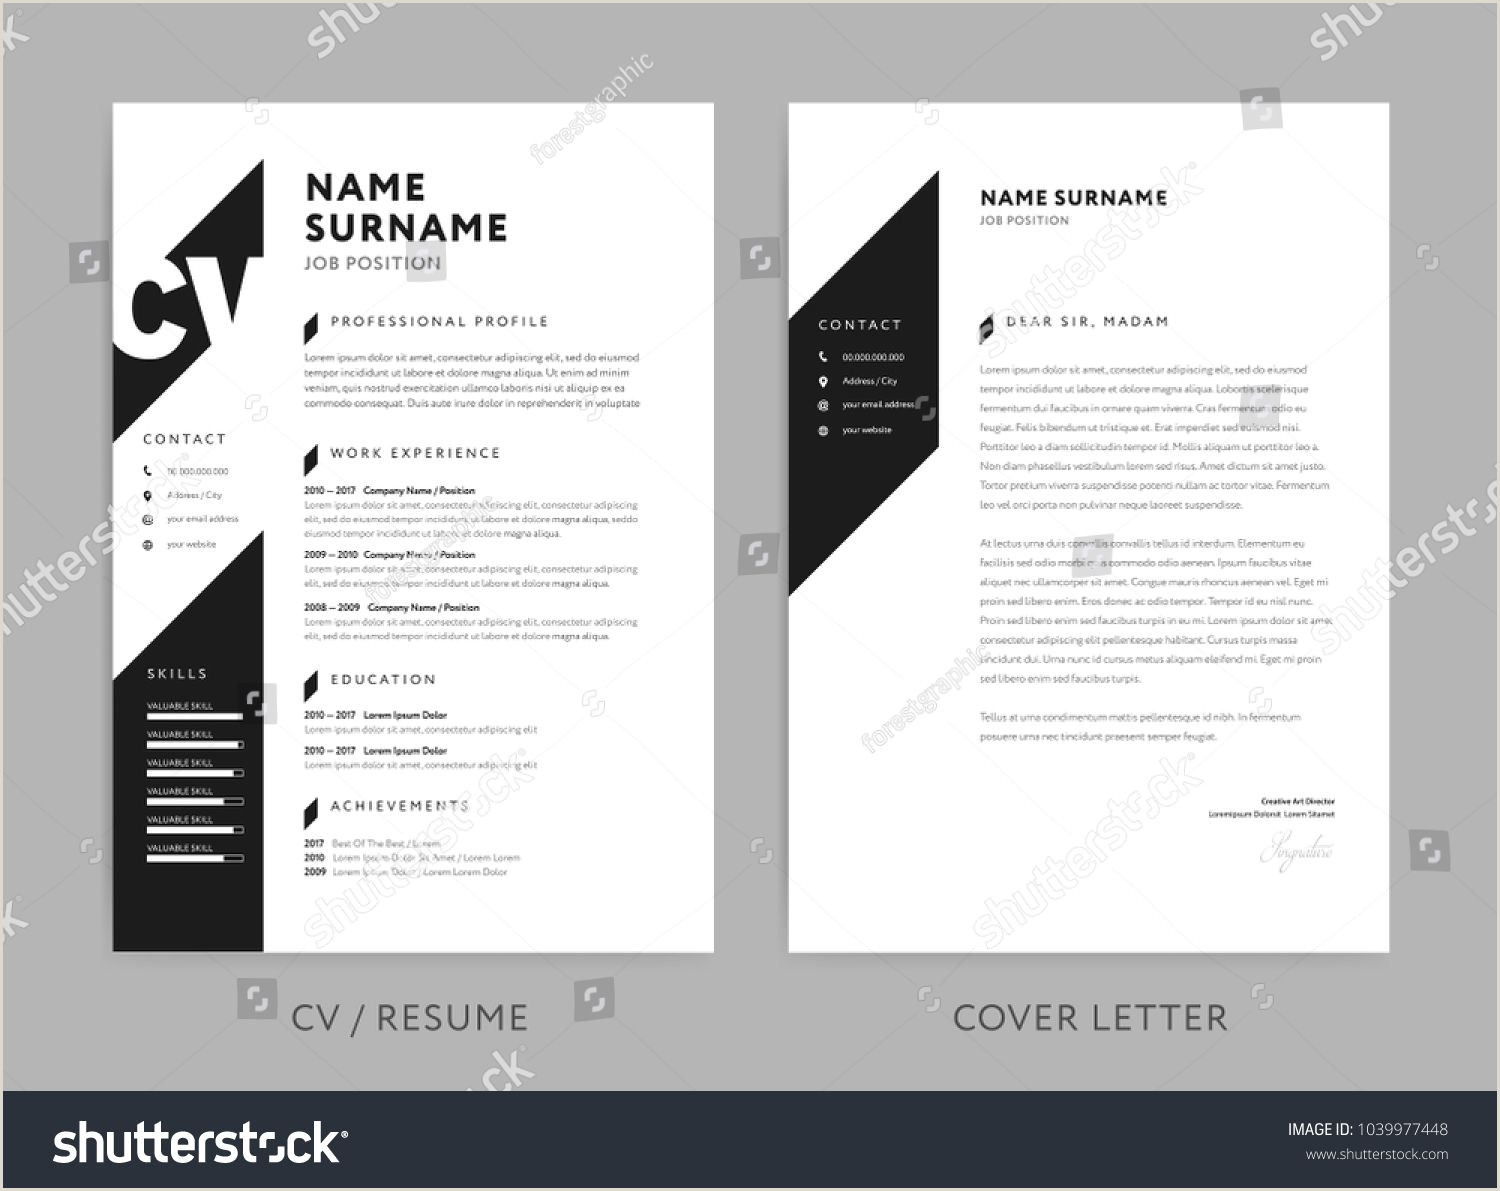 Minimalist CV resume and cover letter minimal design